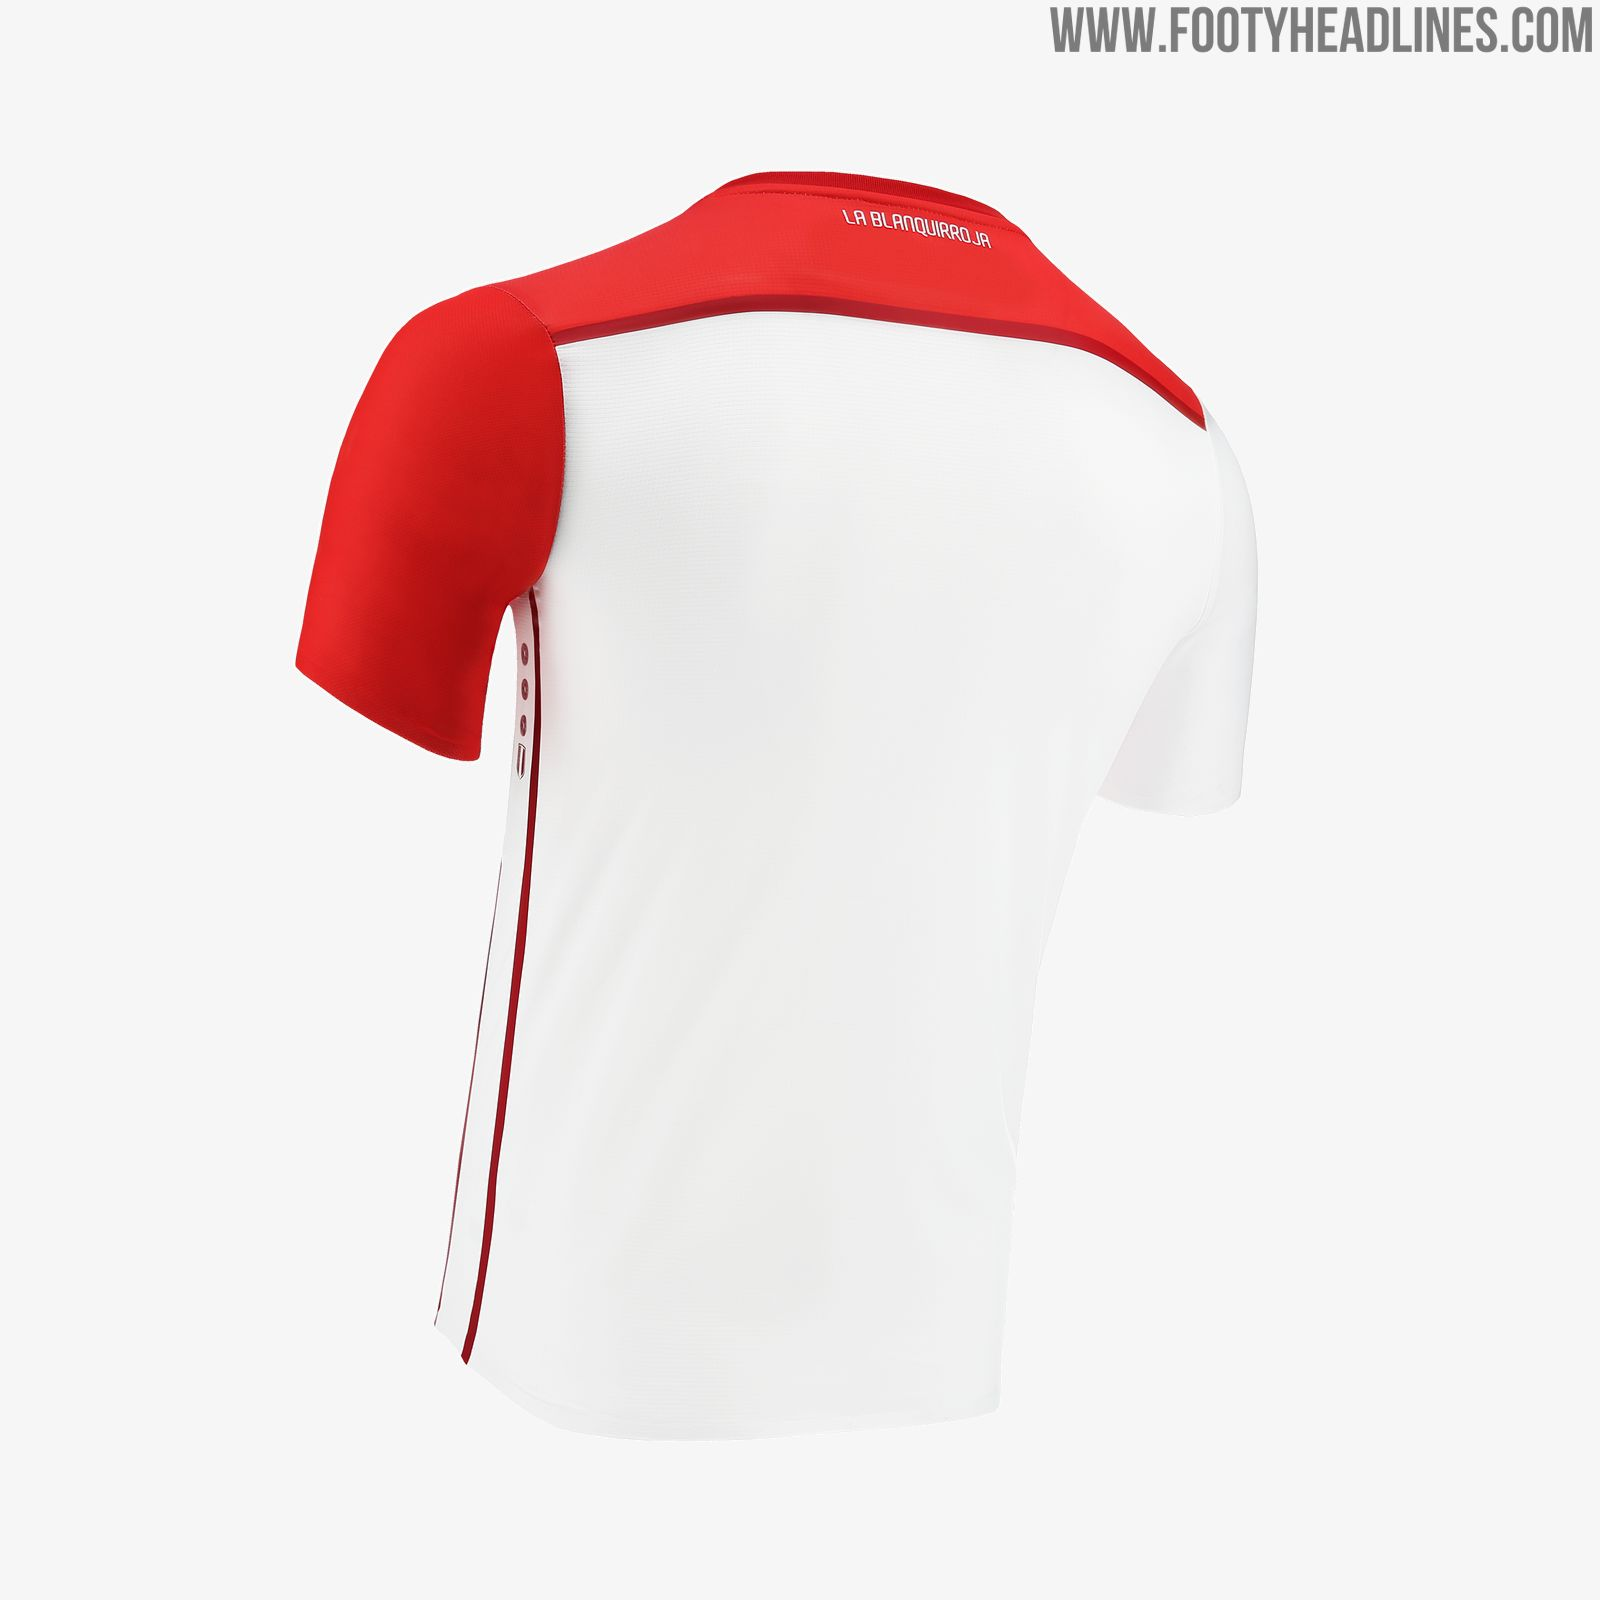 5d8c84928a1 The new Peru home jersey introduces a pretty unique take on the classic red  sash design as Marathon Sports don't shy away from possible controversies.